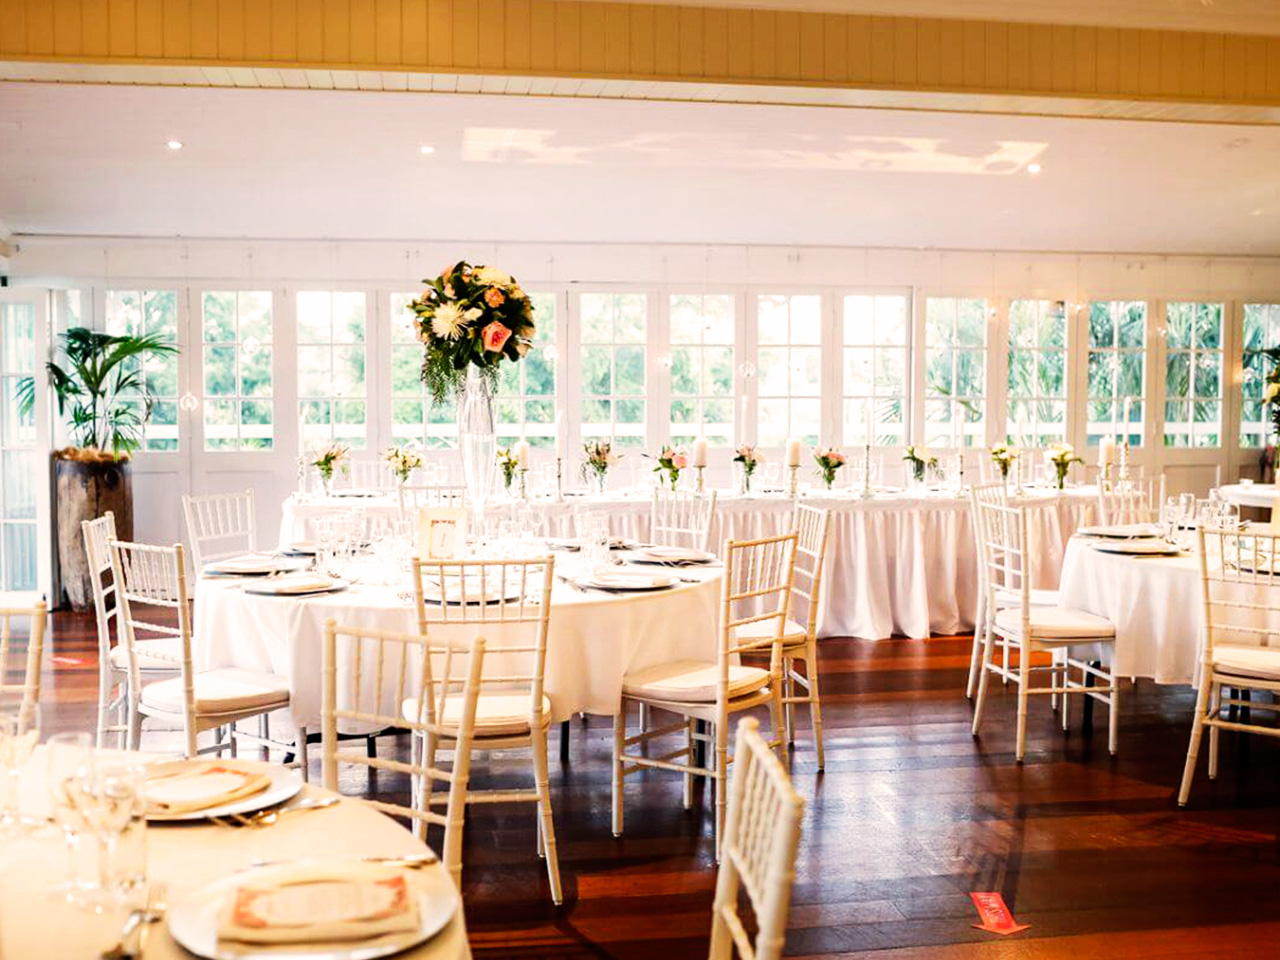 Wedding dining setting overlooking balcony and garden